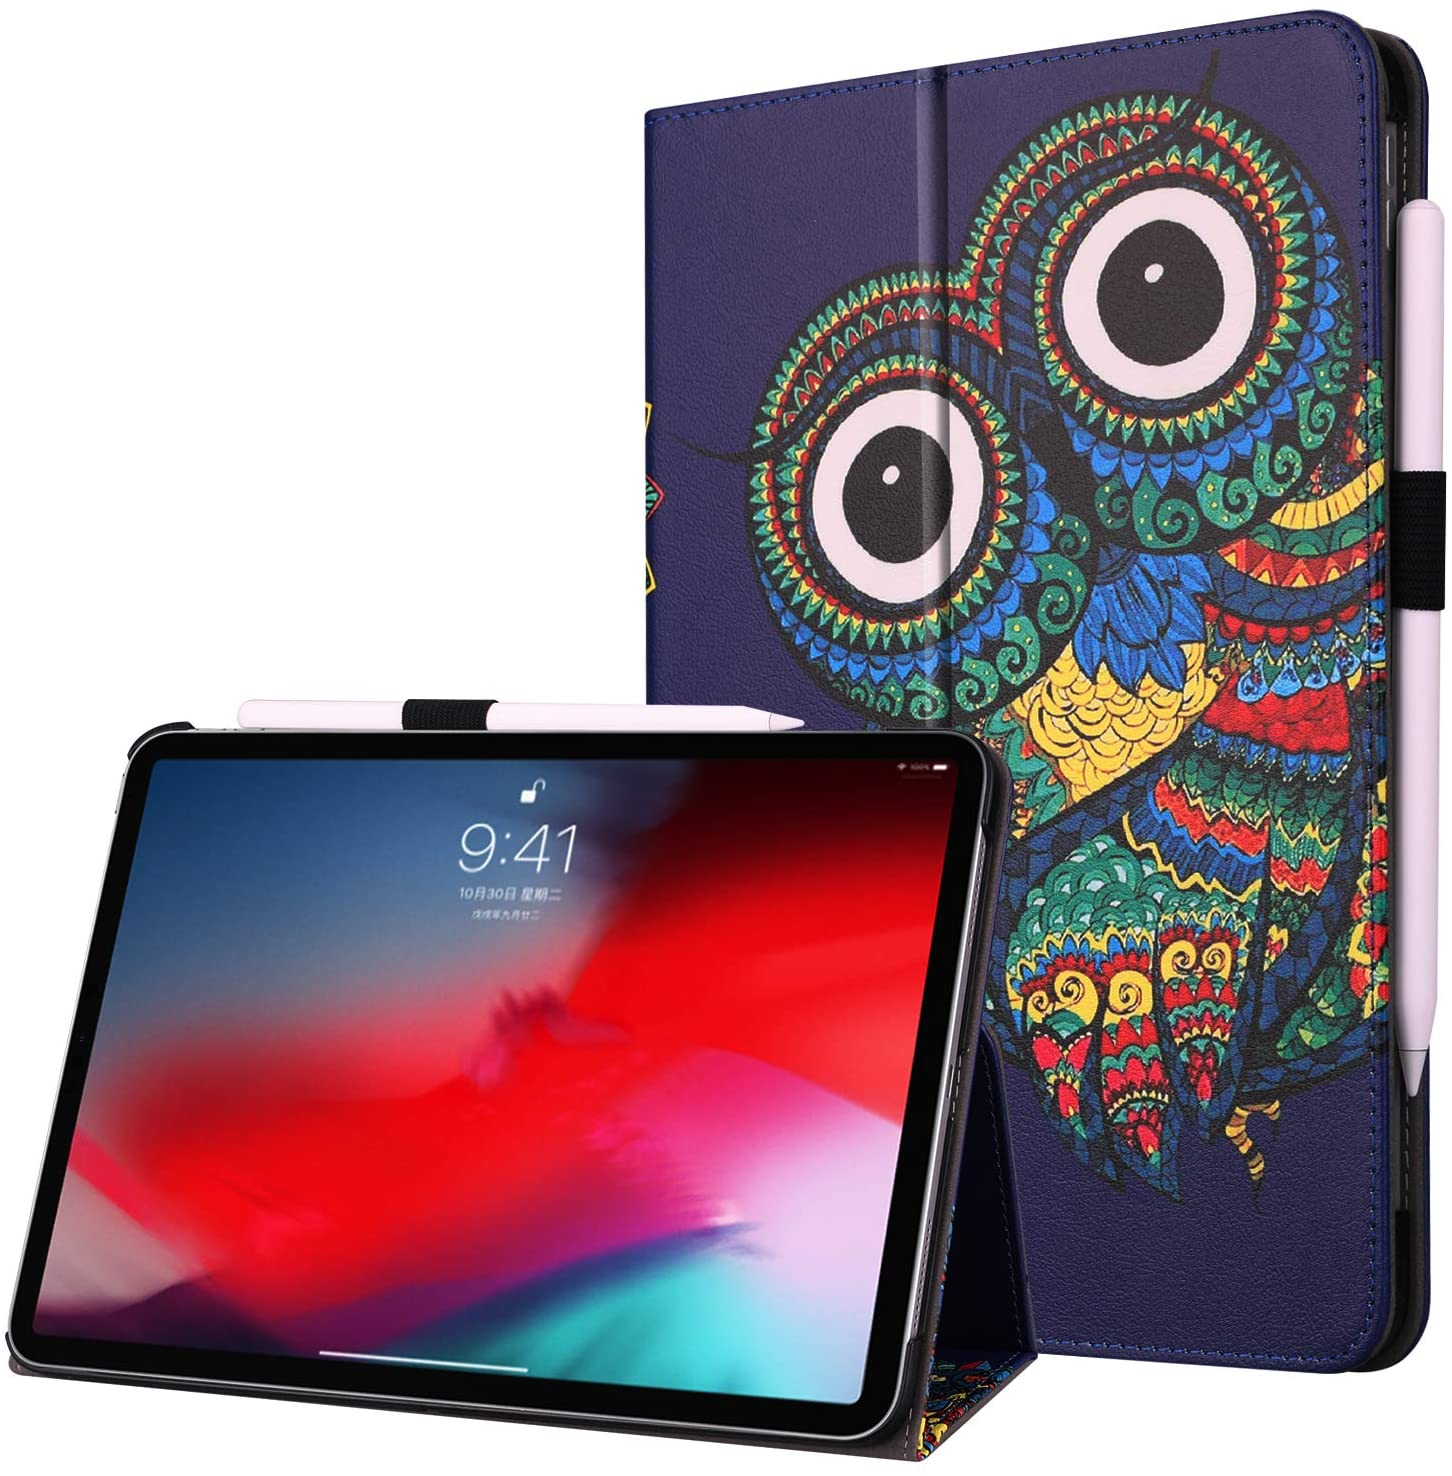 New iPad Pro 11 Inch 2018 Case with Pencil Holder, Gylint Lightweight Pu Leather Case Cover Stand with Auto Sleep/Wake, Protective for iPad Pro 11 2018 (Owl)